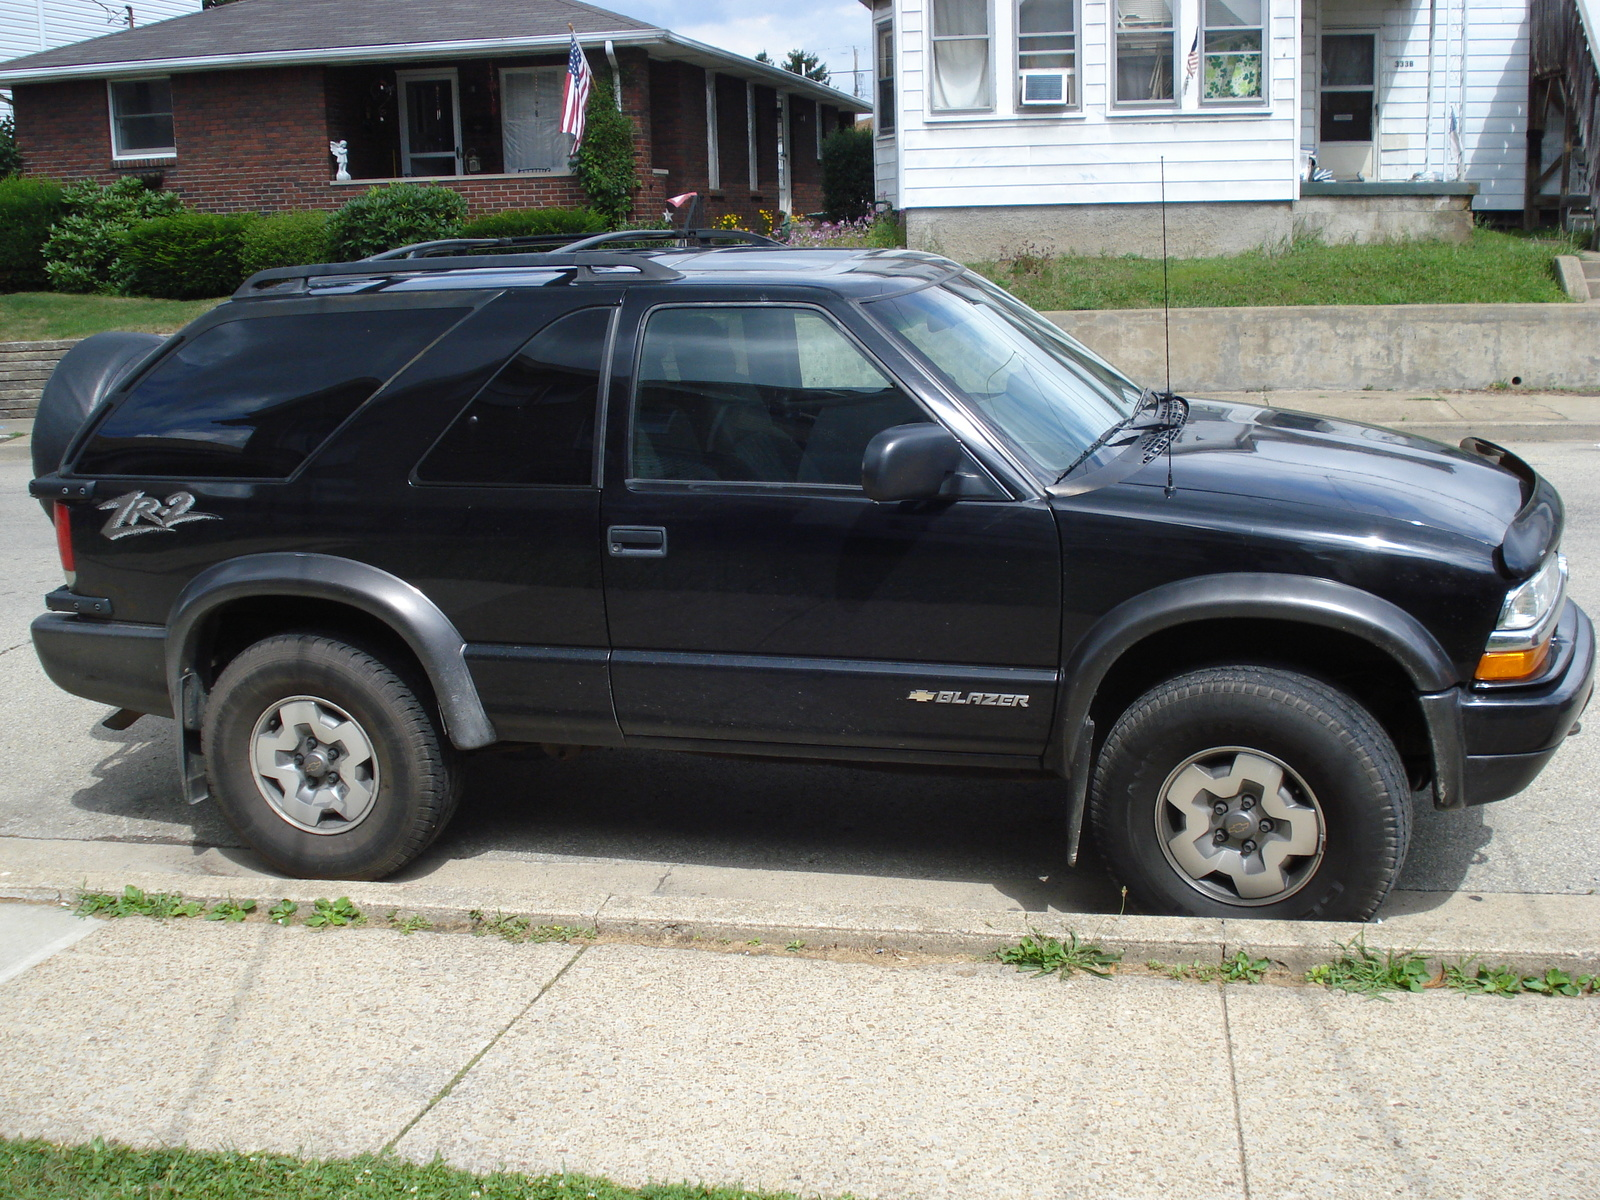 Chevrolet Blazer 2006 Review Amazing Pictures And Images Look At The Car